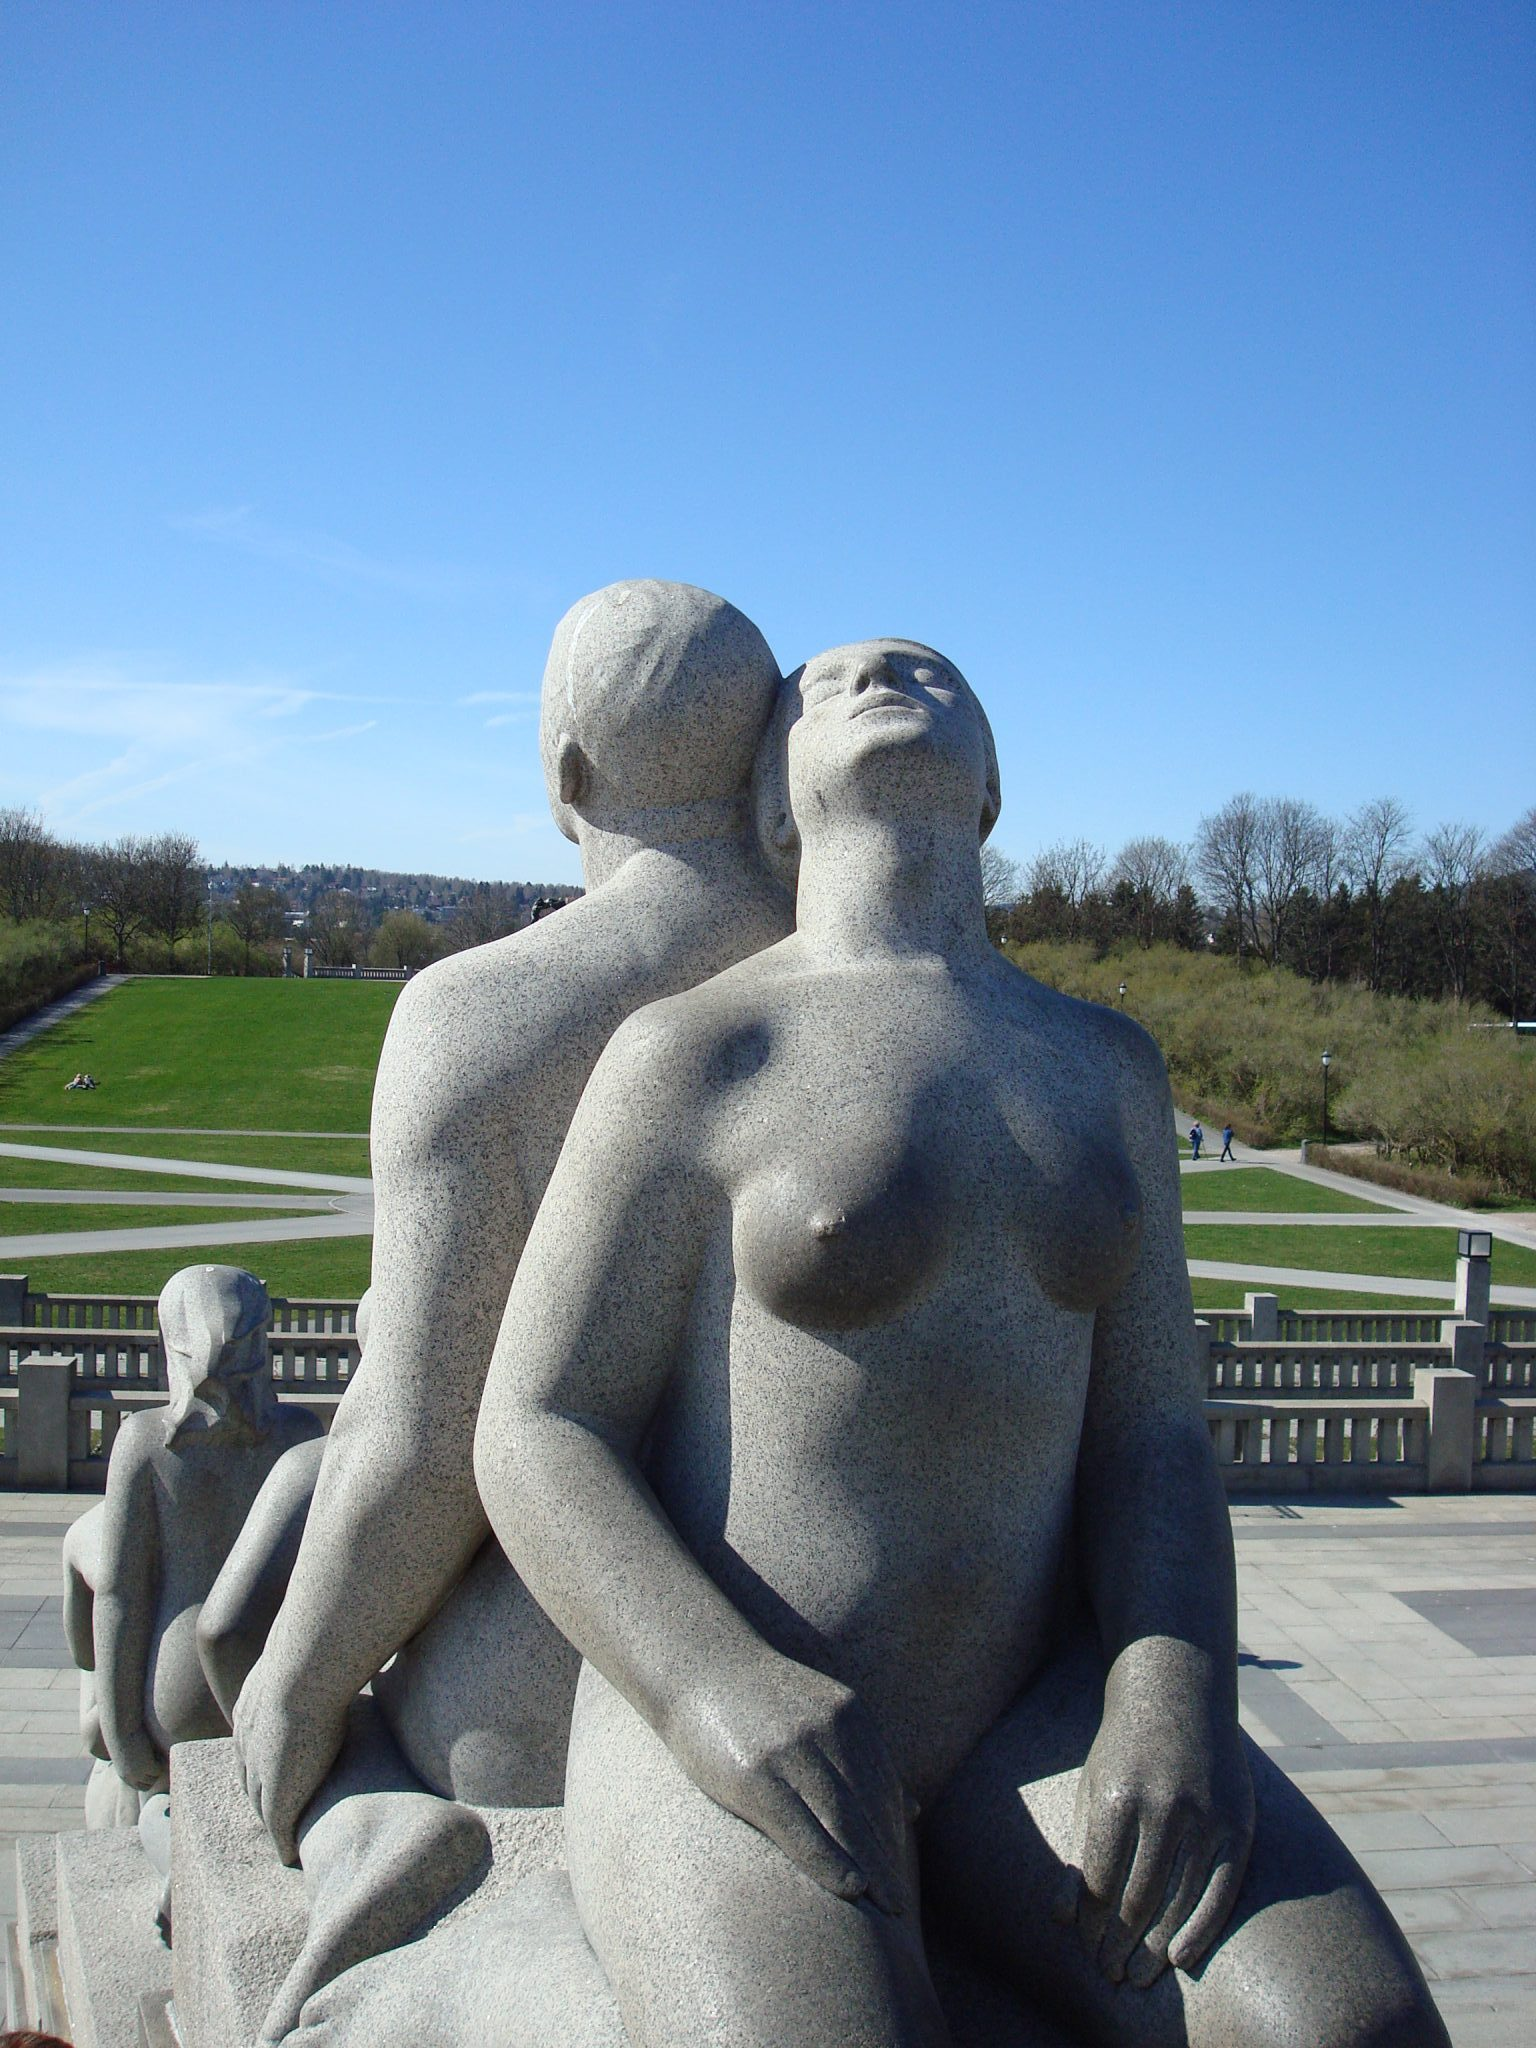 sculptures-in-vigeland-park-oslo